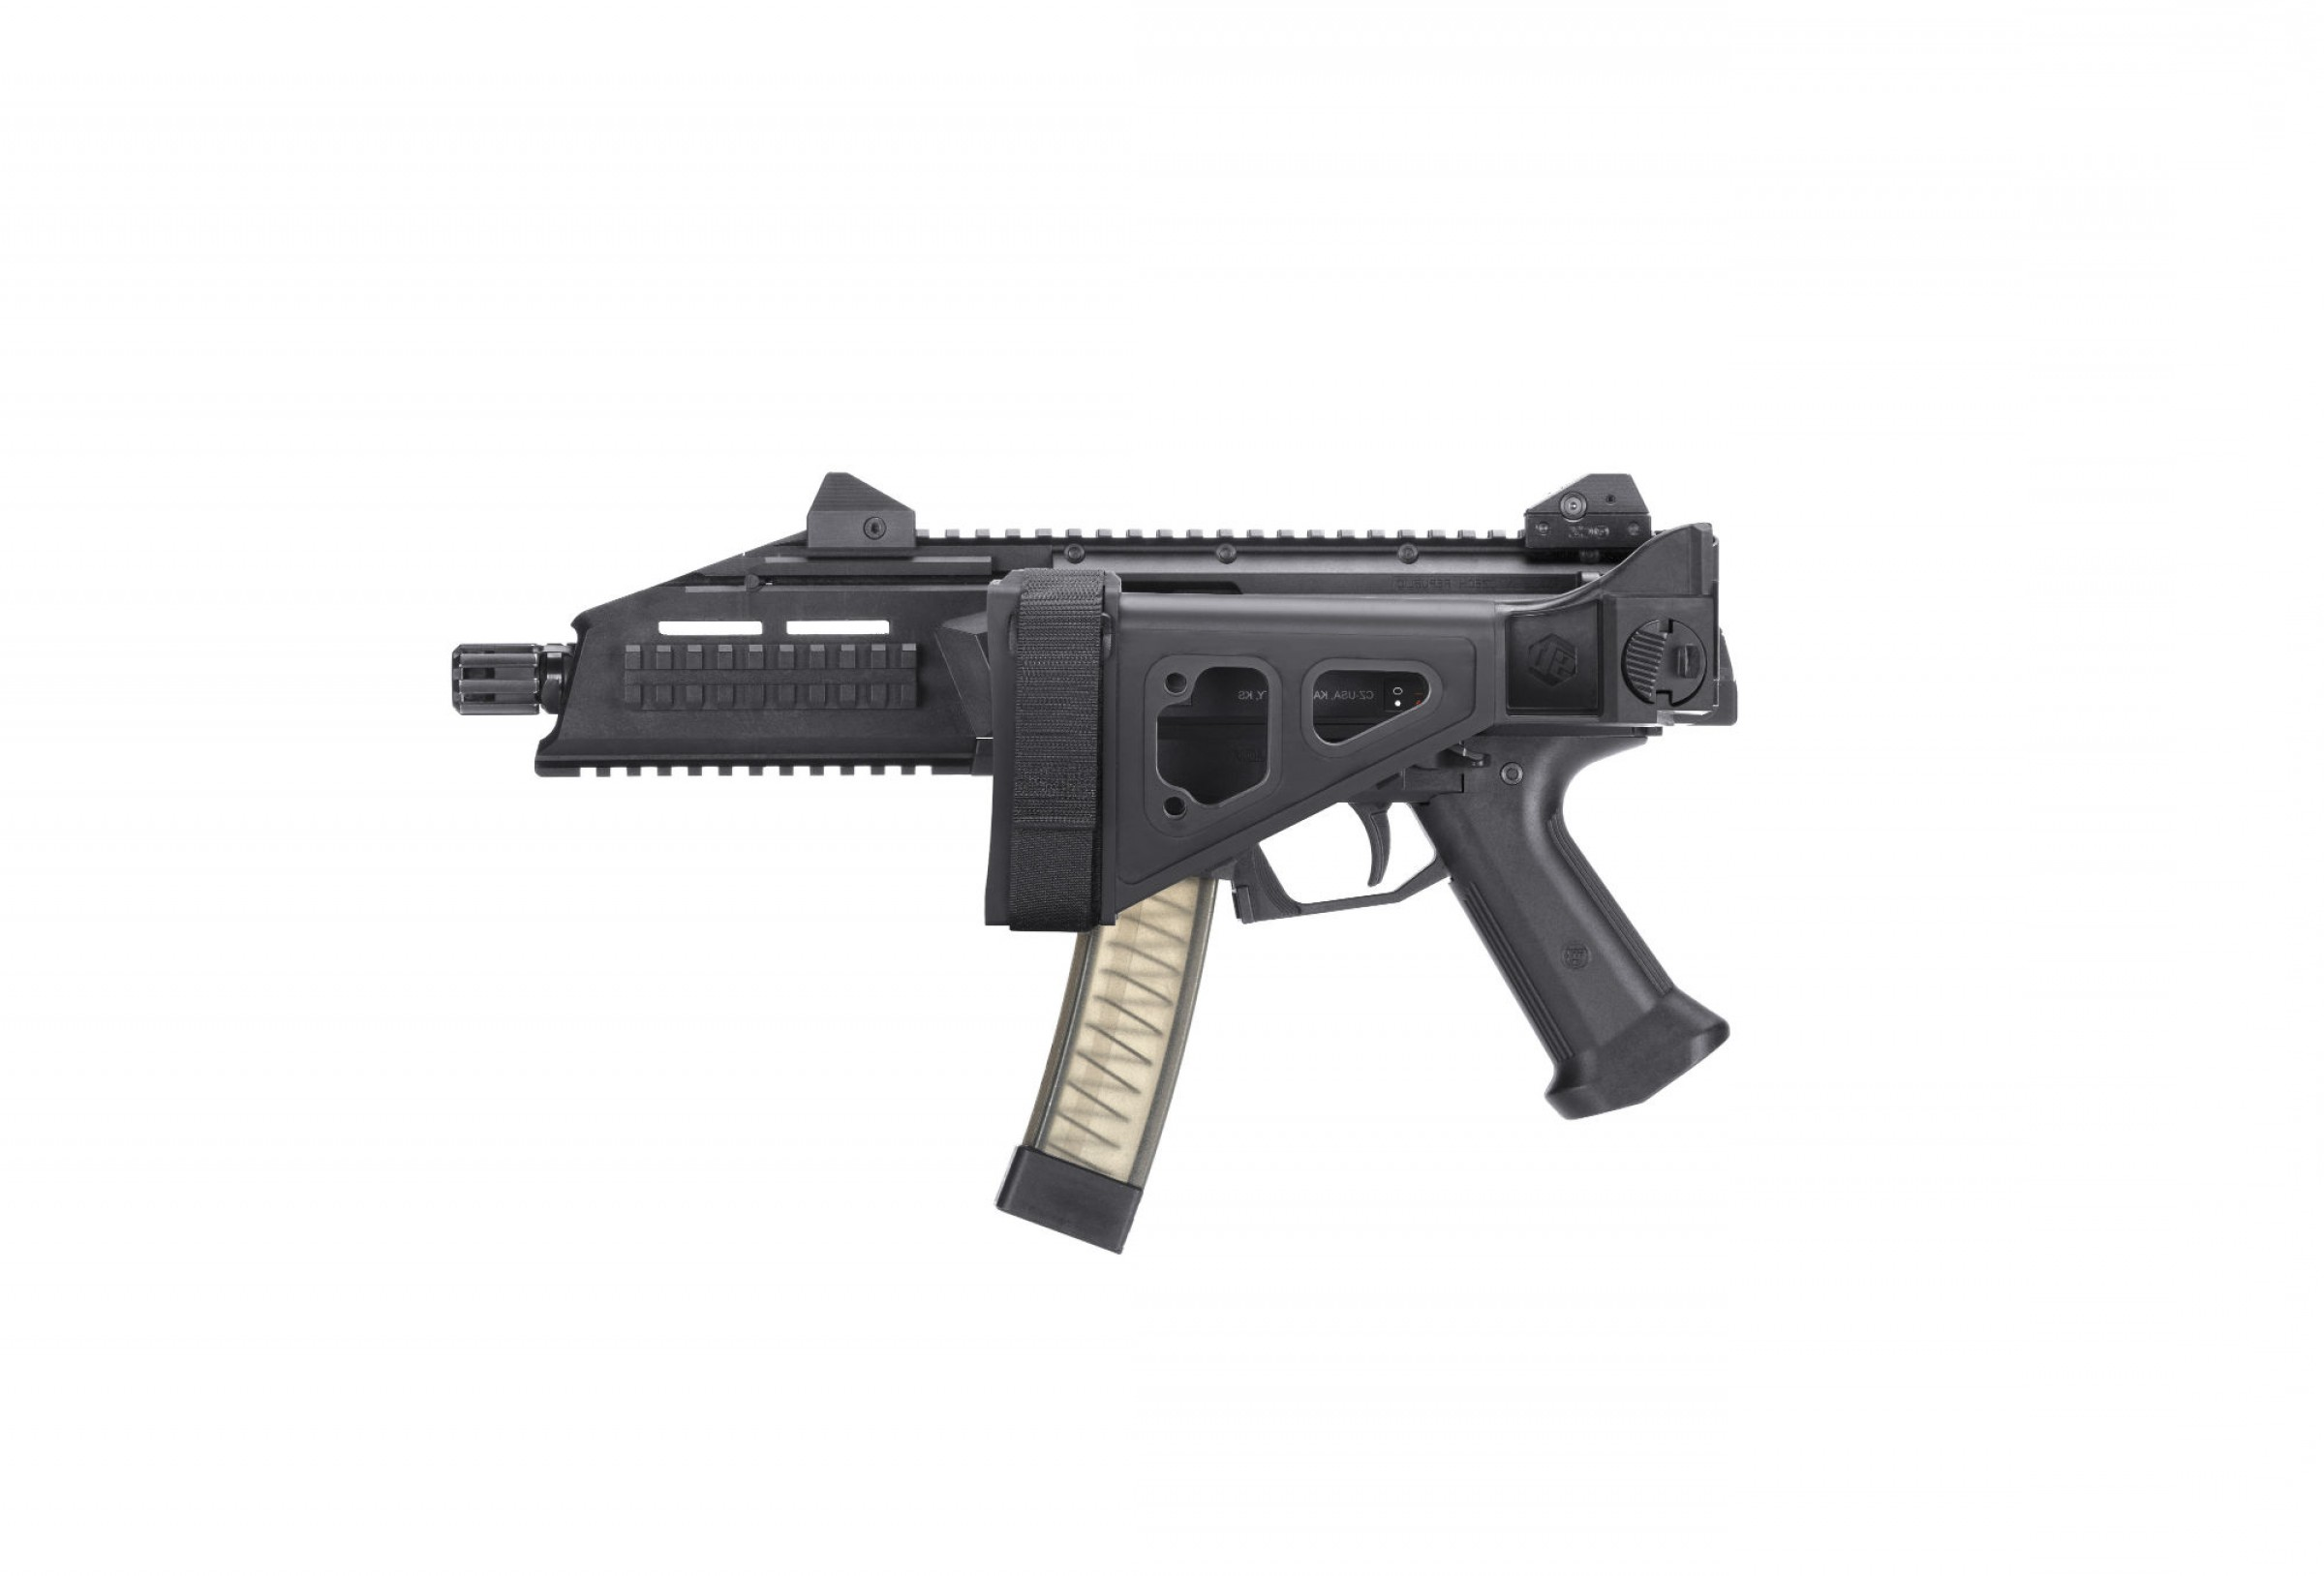 Kriss Vector Pistol Brace: Sb Tactical Introduces New Product Lines